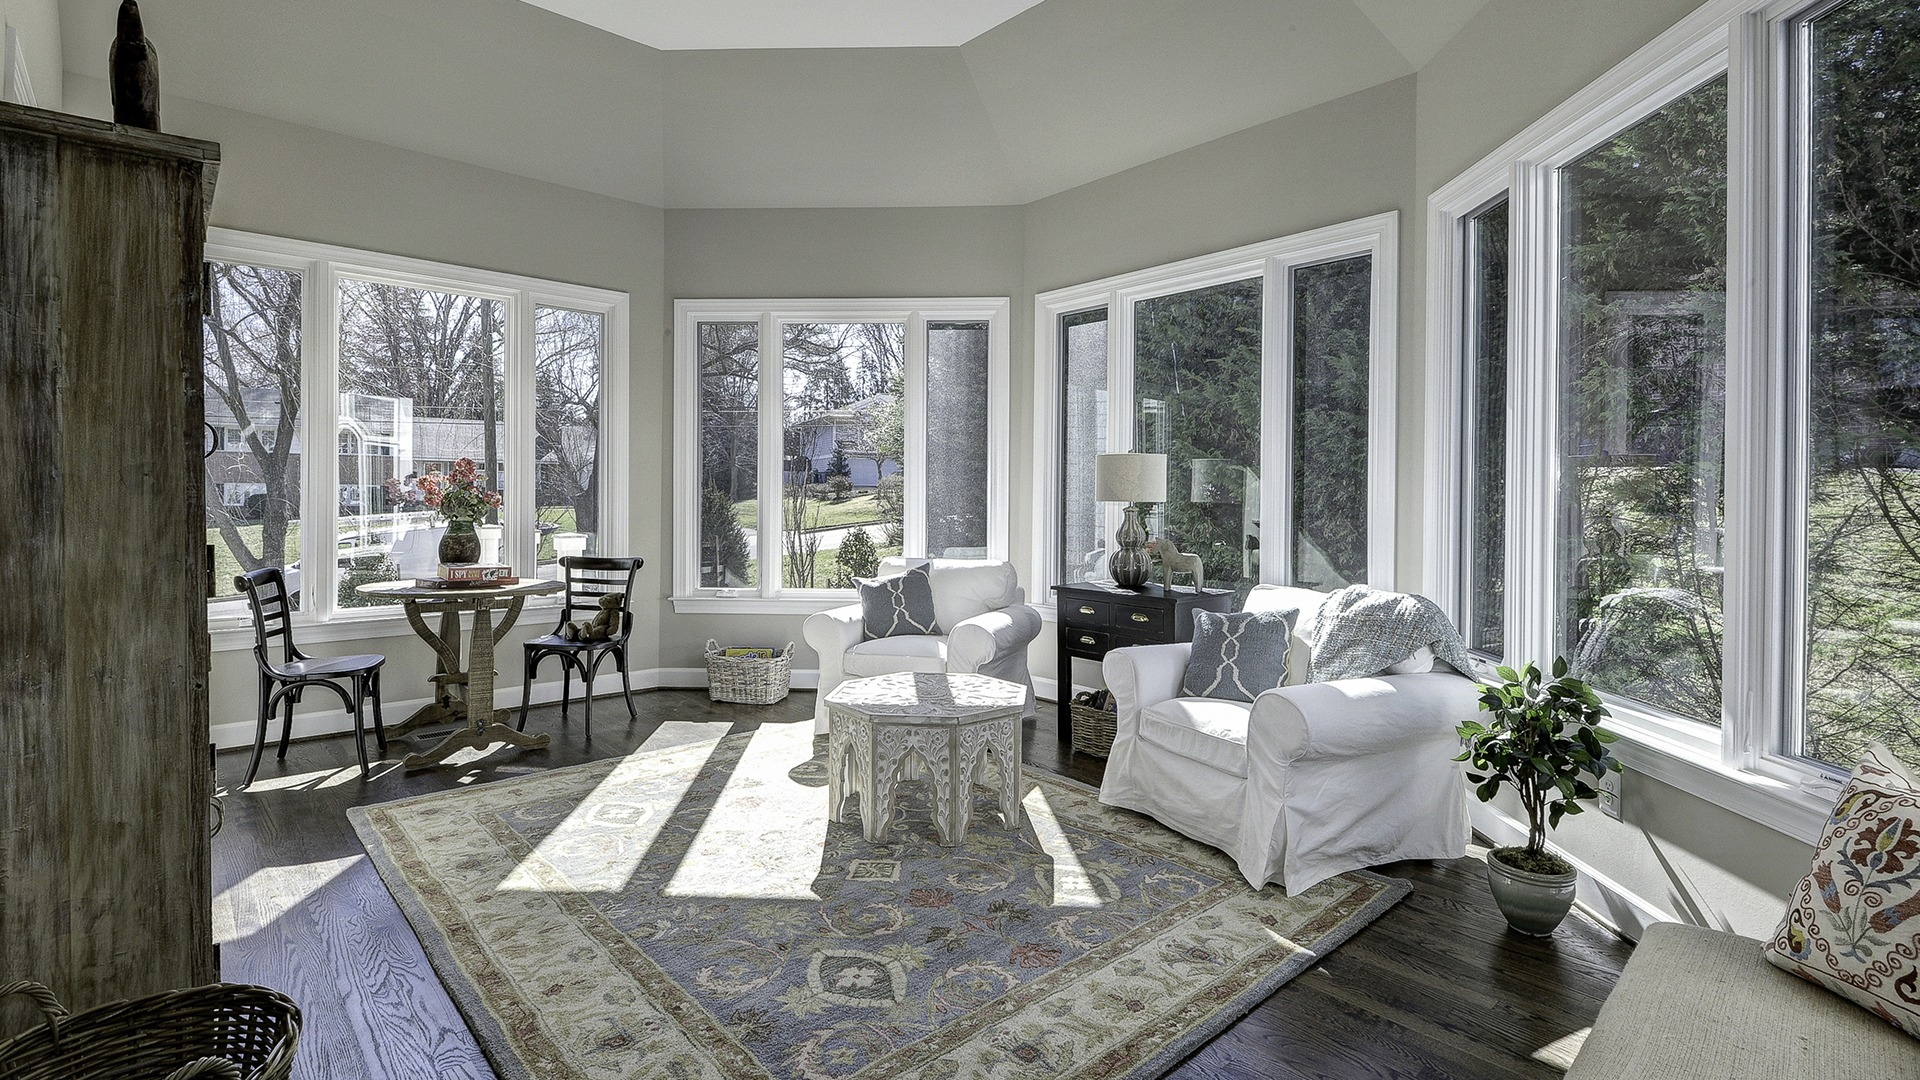 The Sunroom in Carper Street, a Gulick | One custom home.